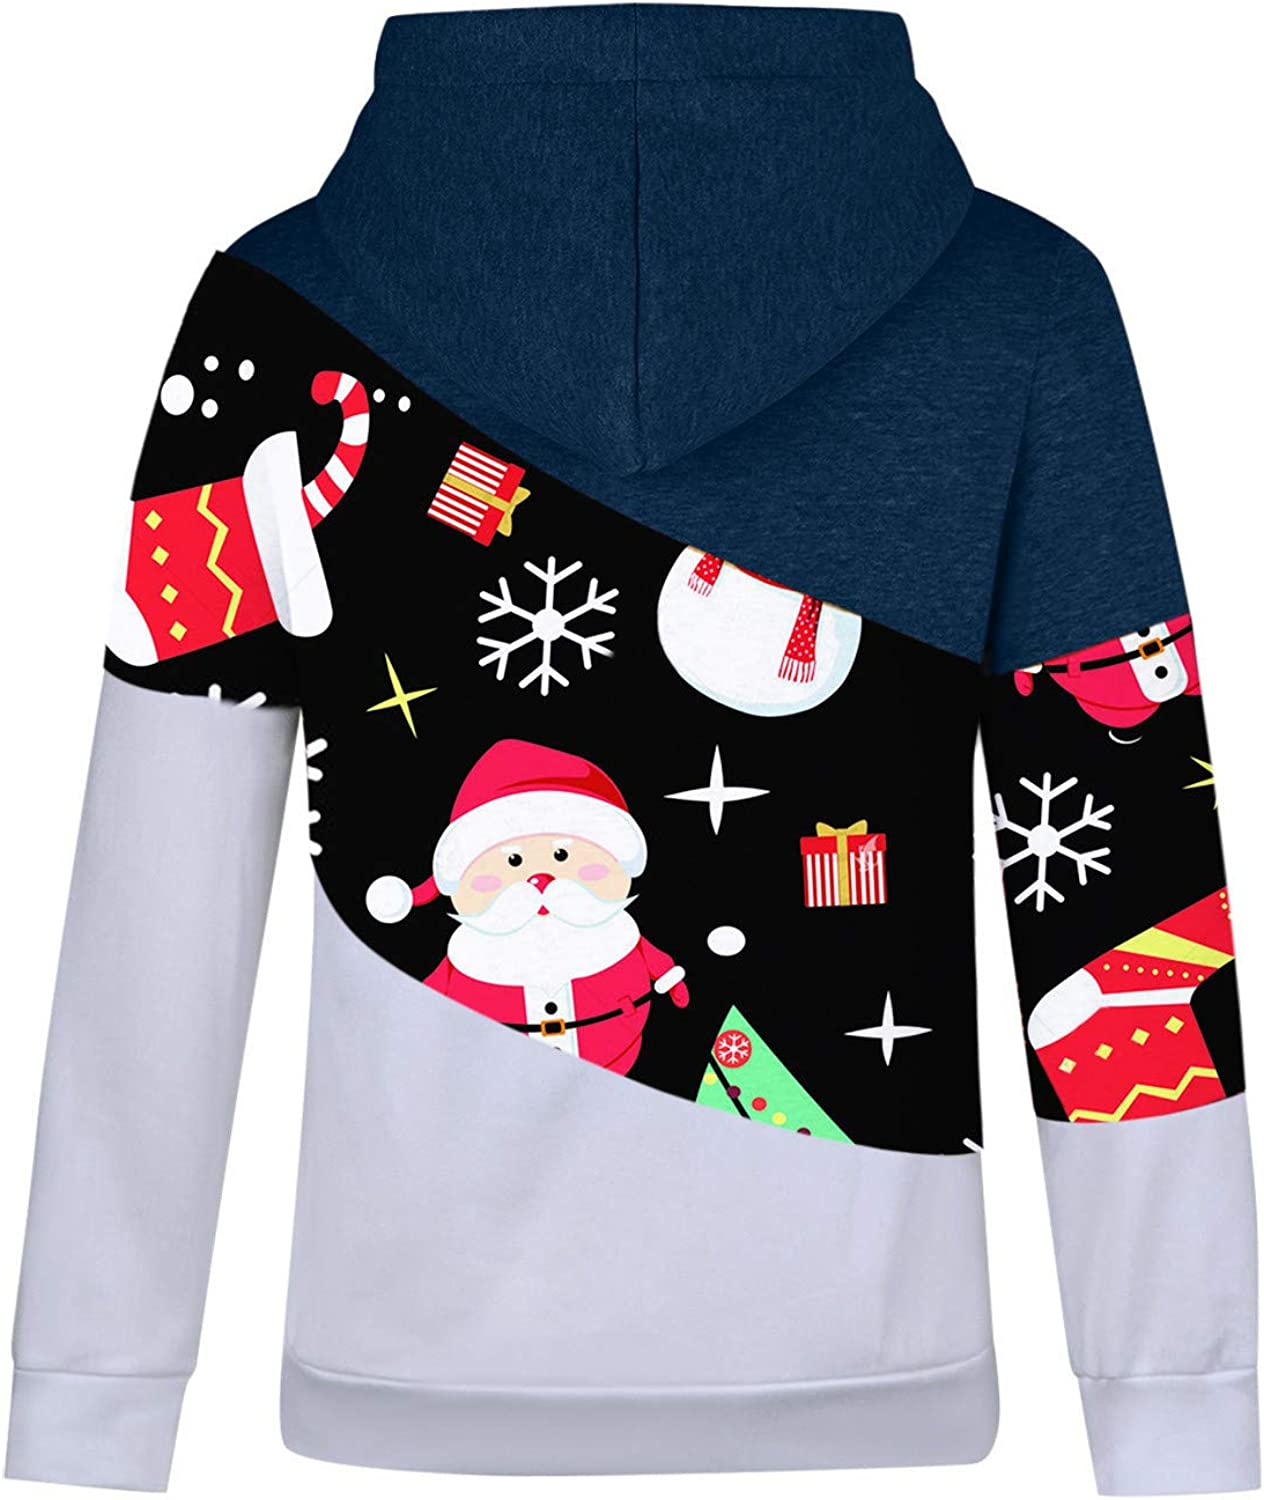 Spring new work one after another Hemlock Women Christmas Shirts Sweat Hooded Turtleneck Pullovers Sales results No. 1